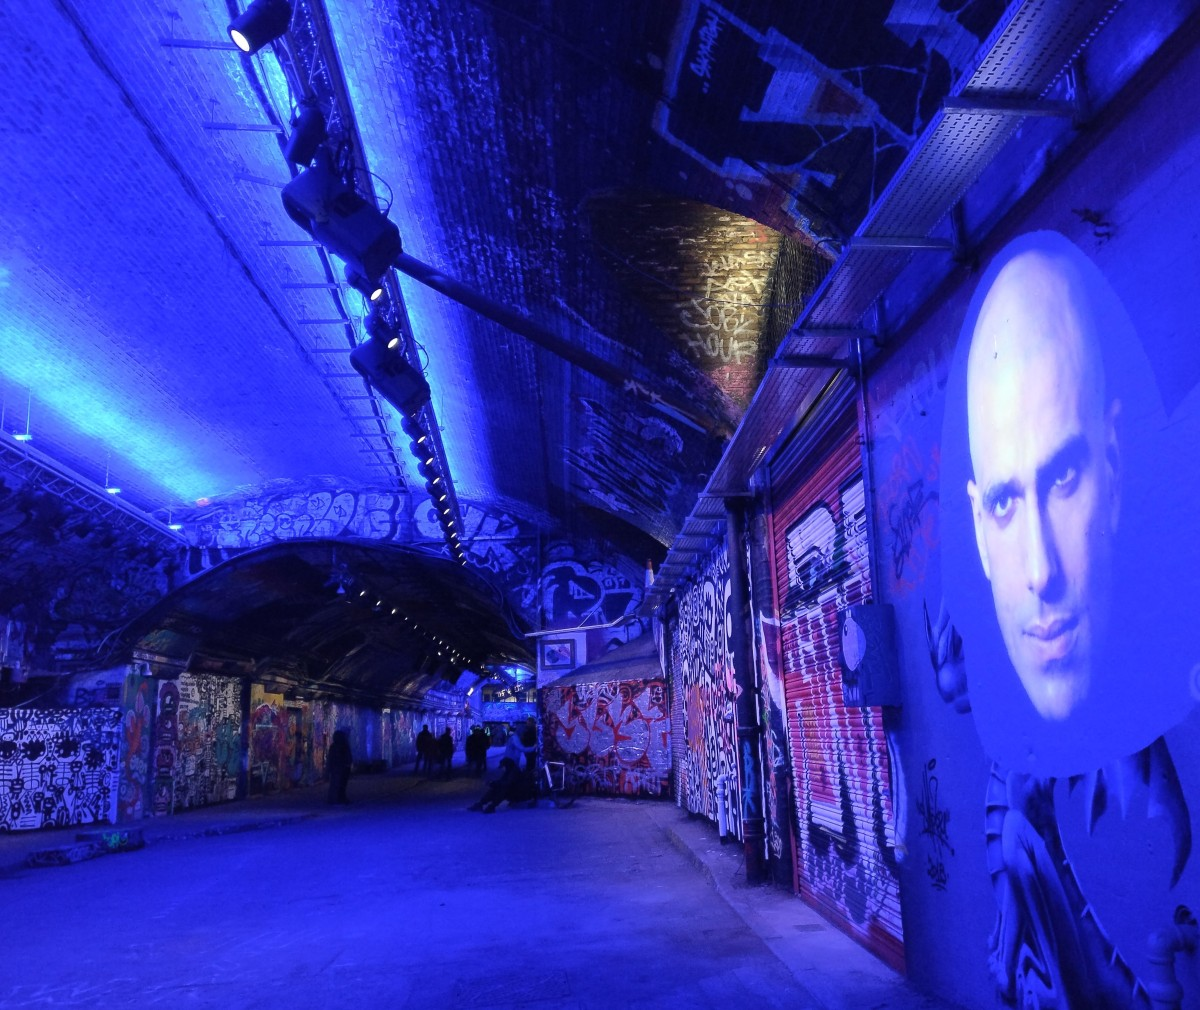 The Lumiere Festival transforms the legal graffiti spot of the Leake Street Tunnel